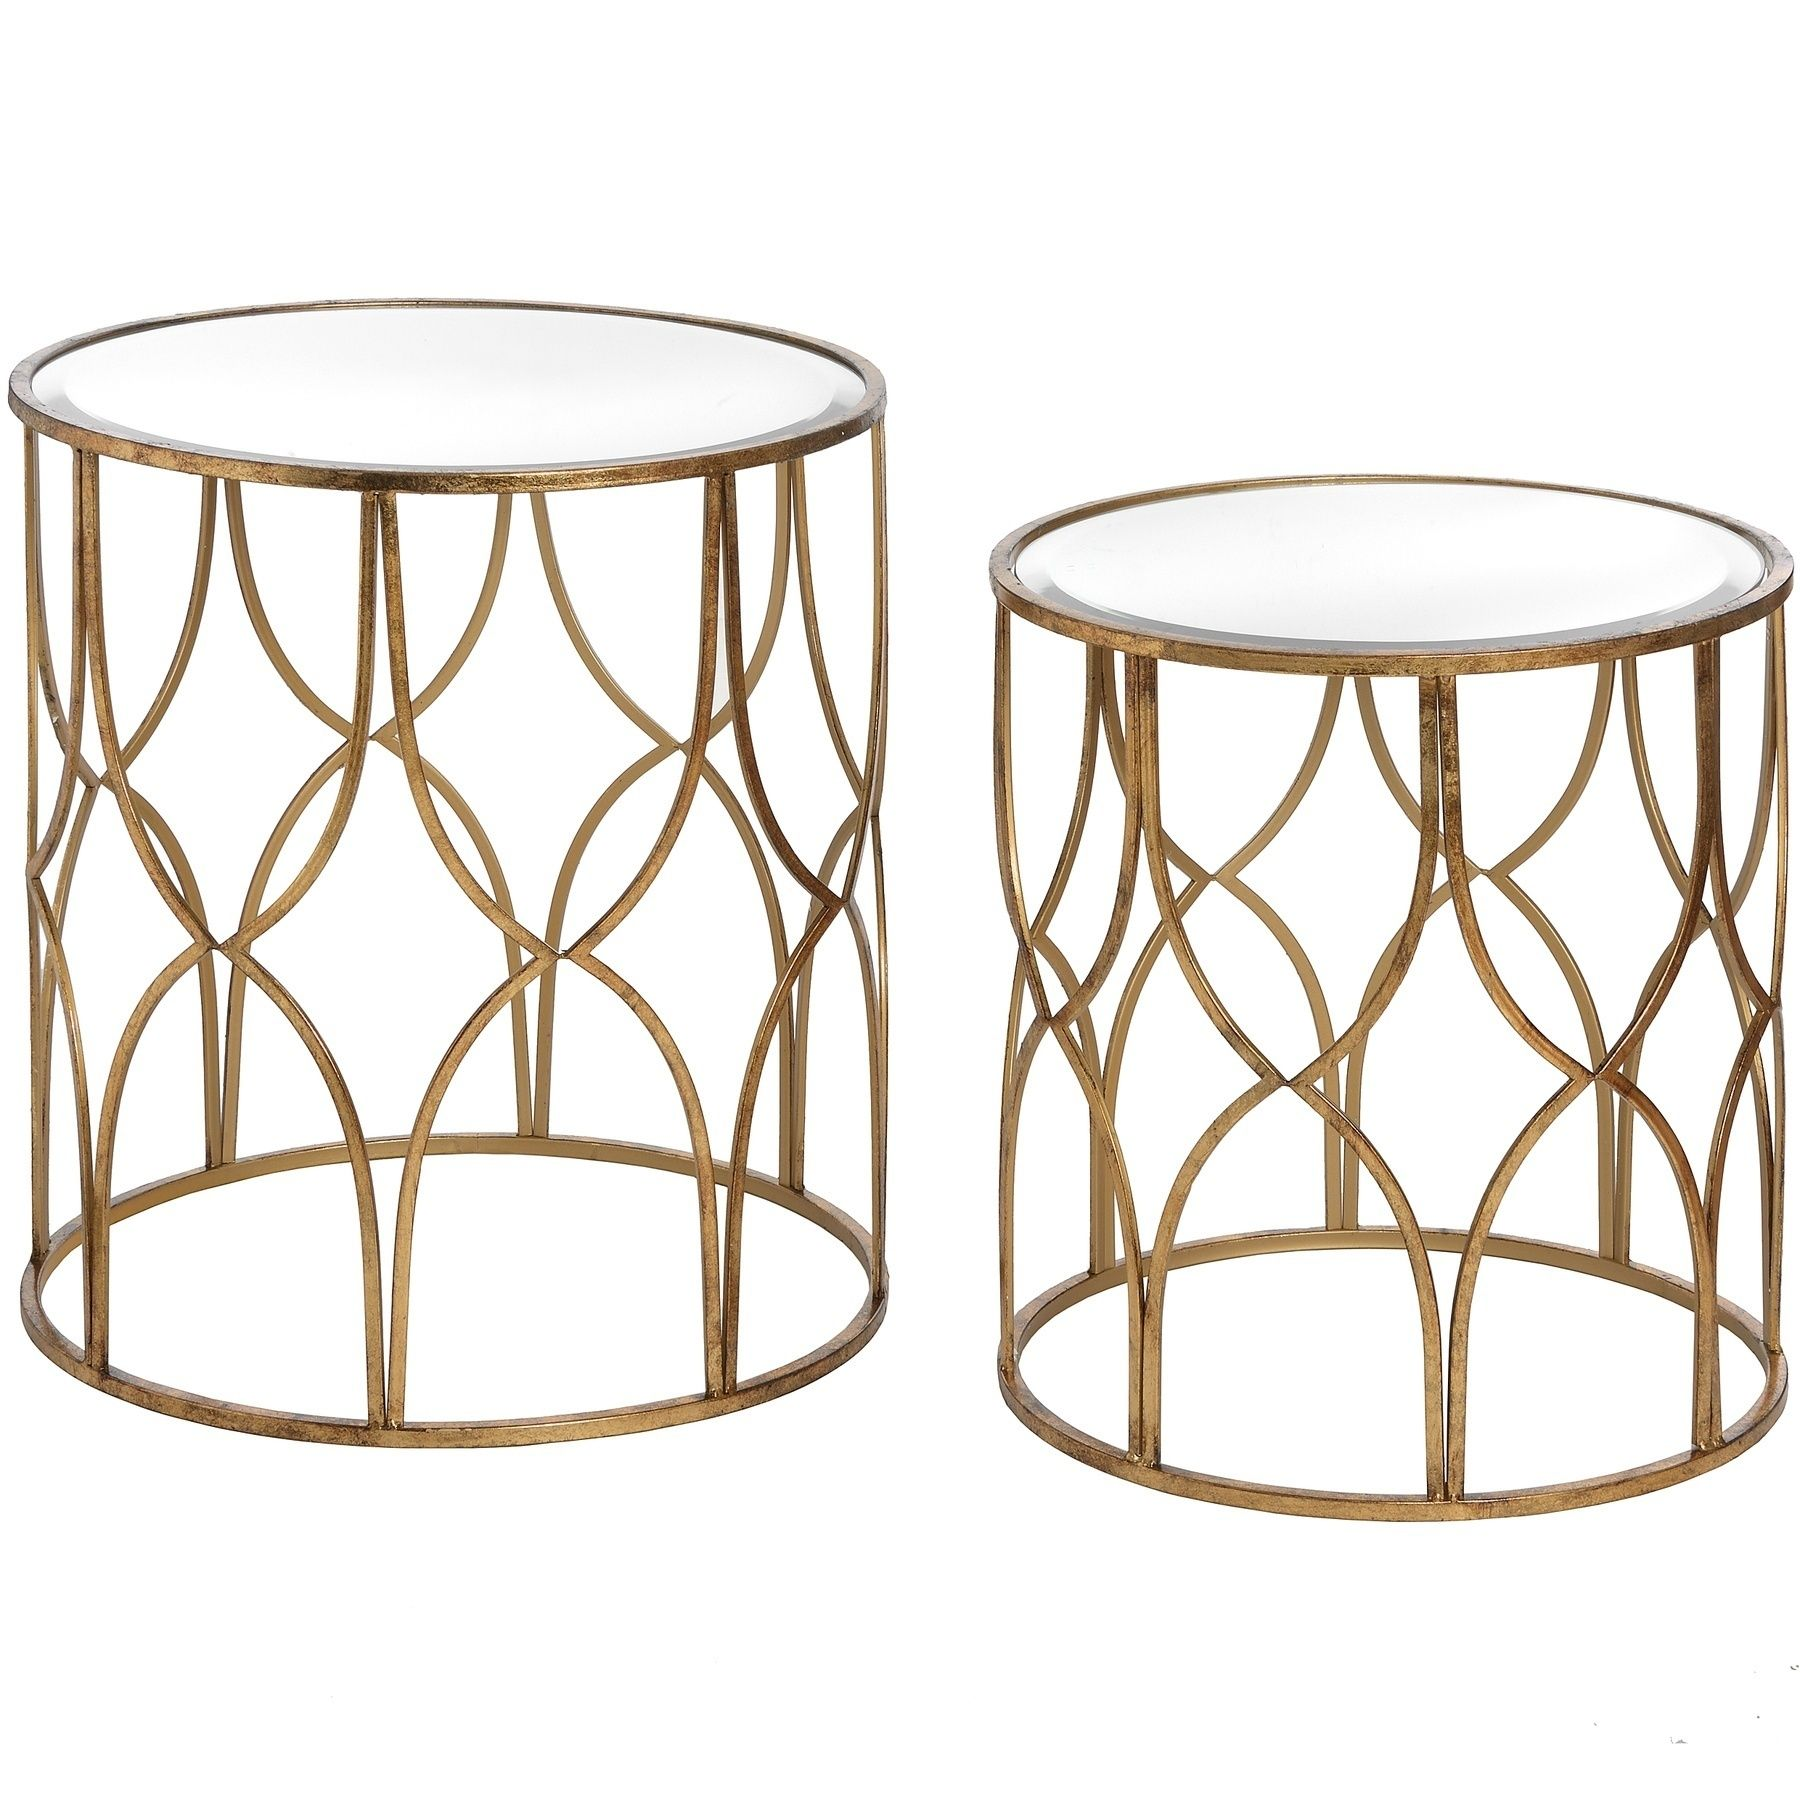 Vintage Styled Gold Lattice Round Set